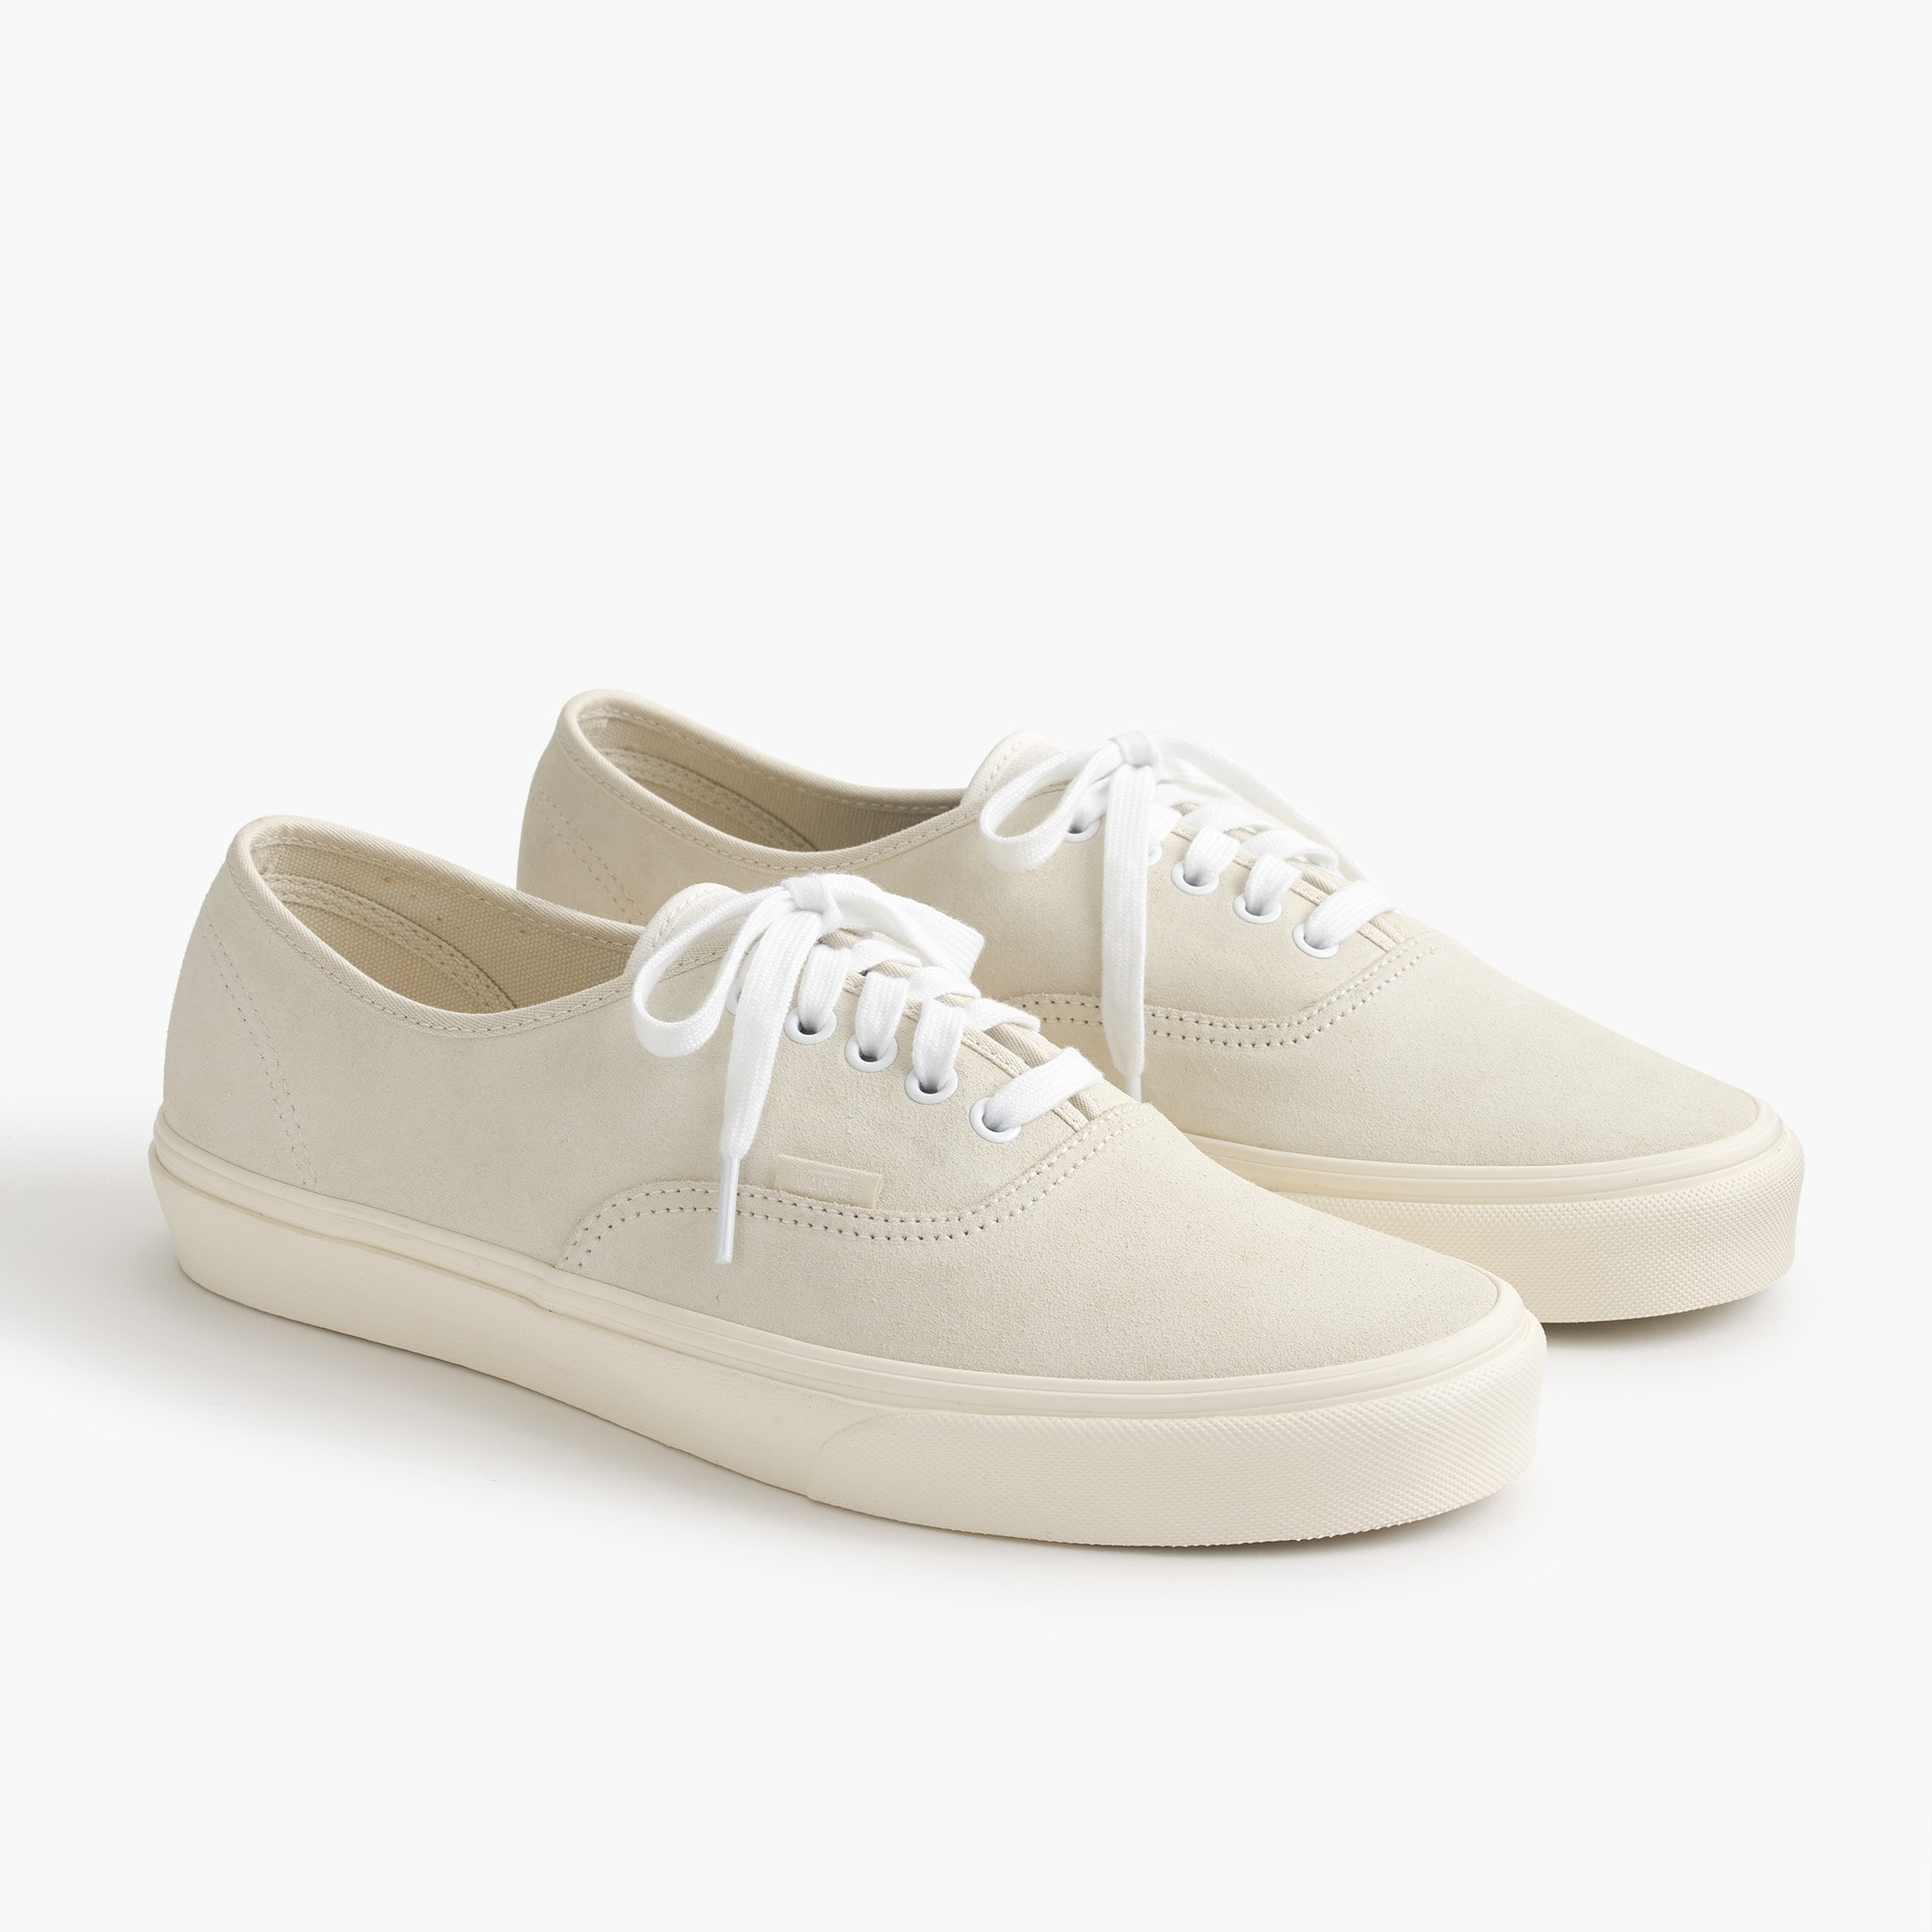 Vans® for J.Crew suede Authentic sneakers men j.crew in good company c